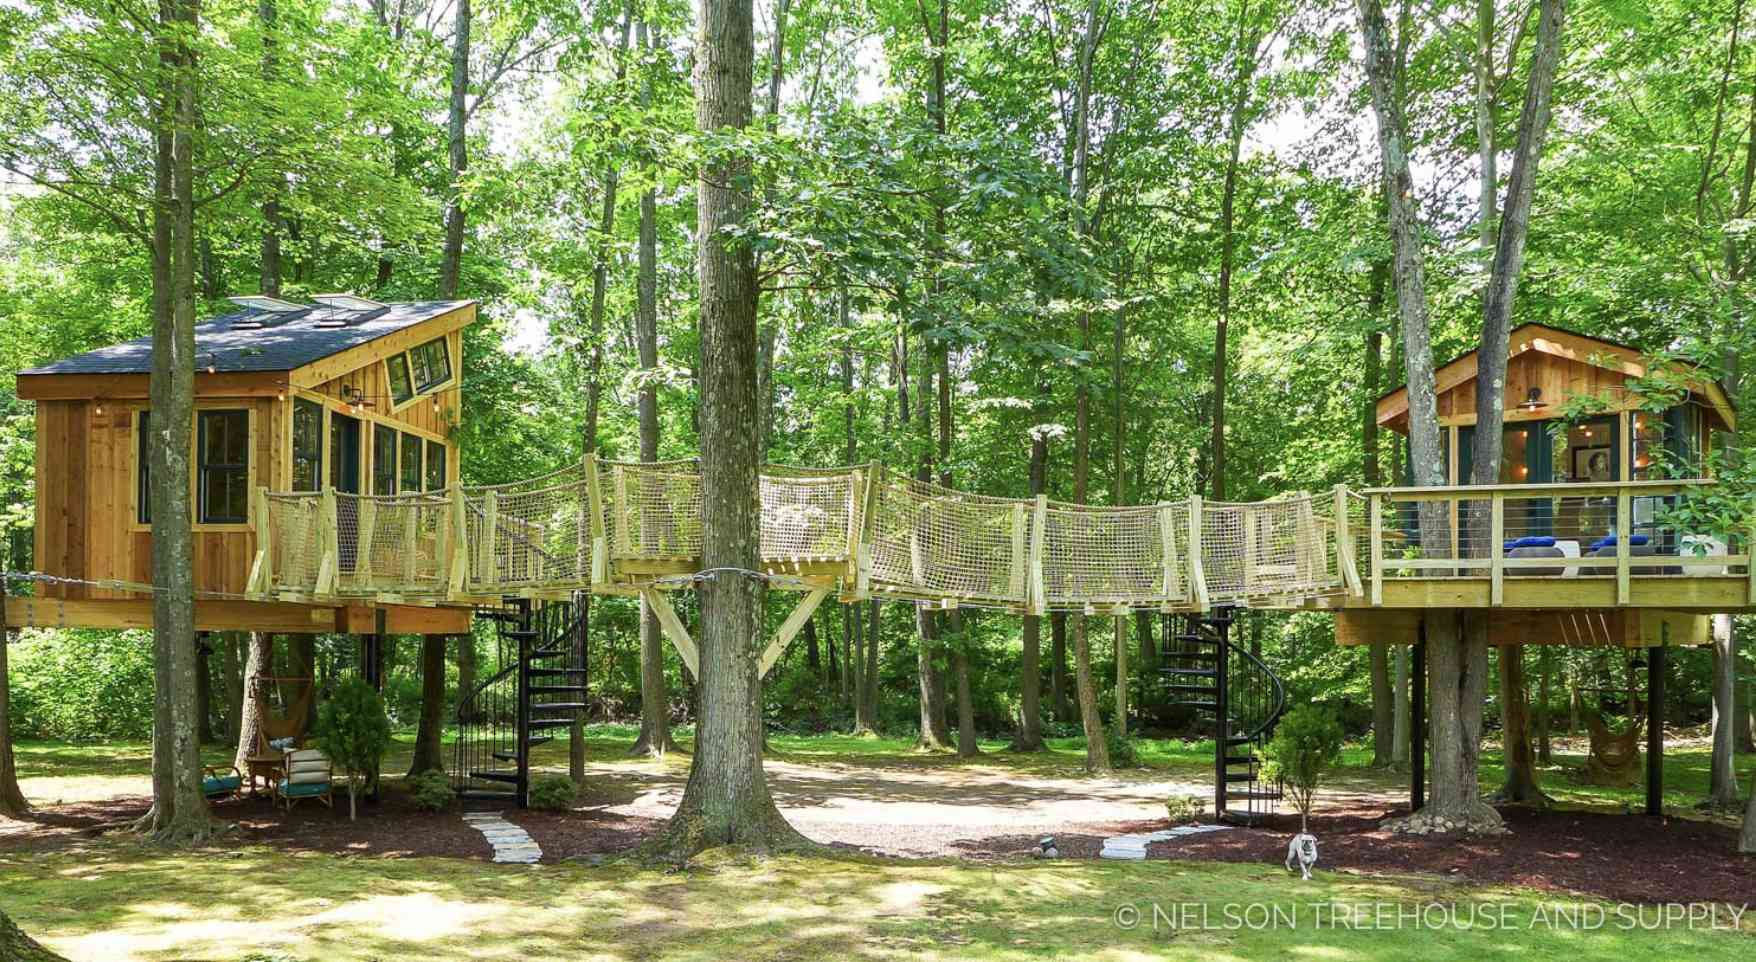 Two treehouses with bridge between them